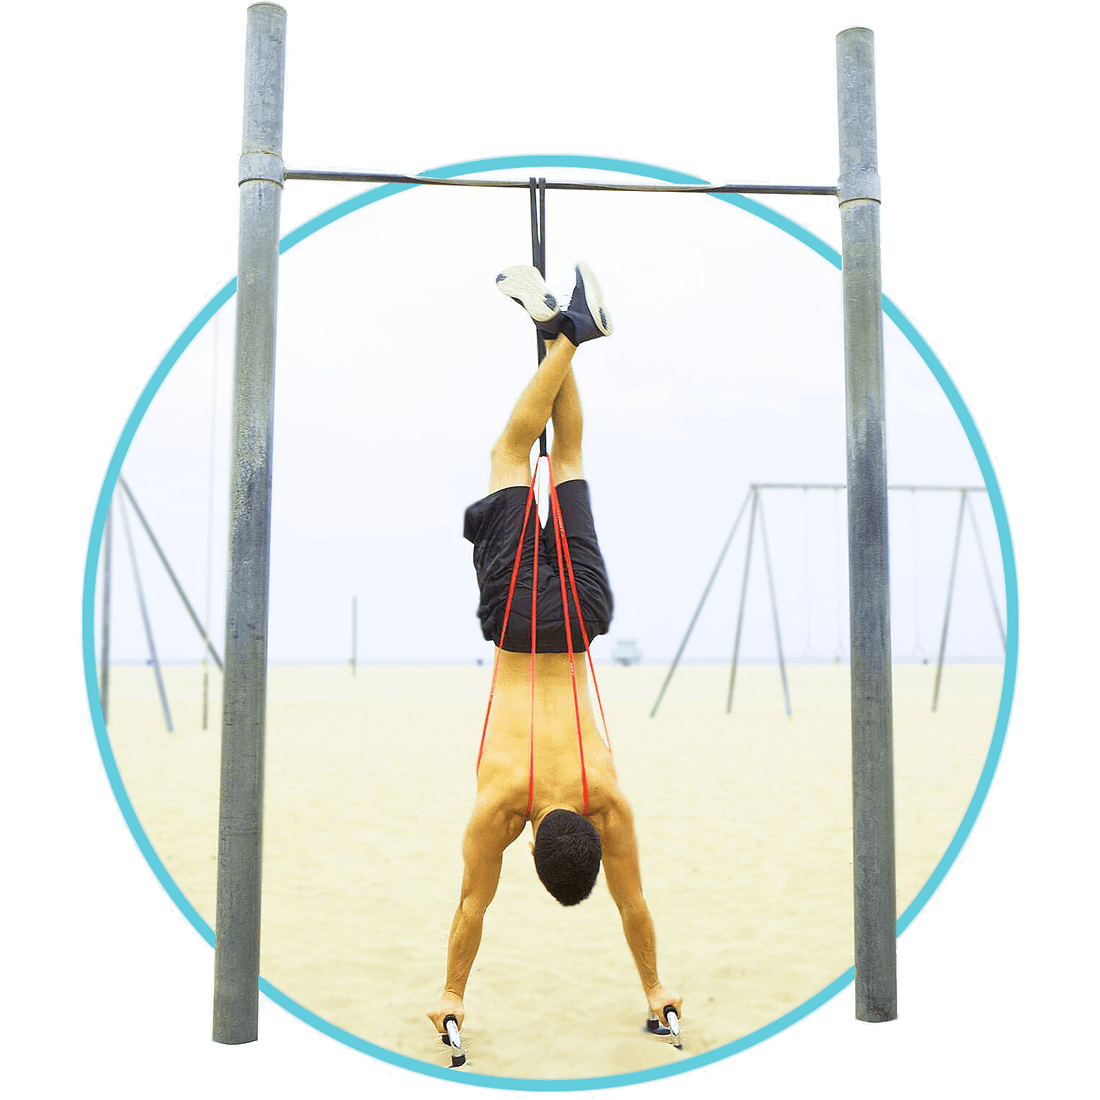 Handstand and Handstand Pushup with Resistance Bands